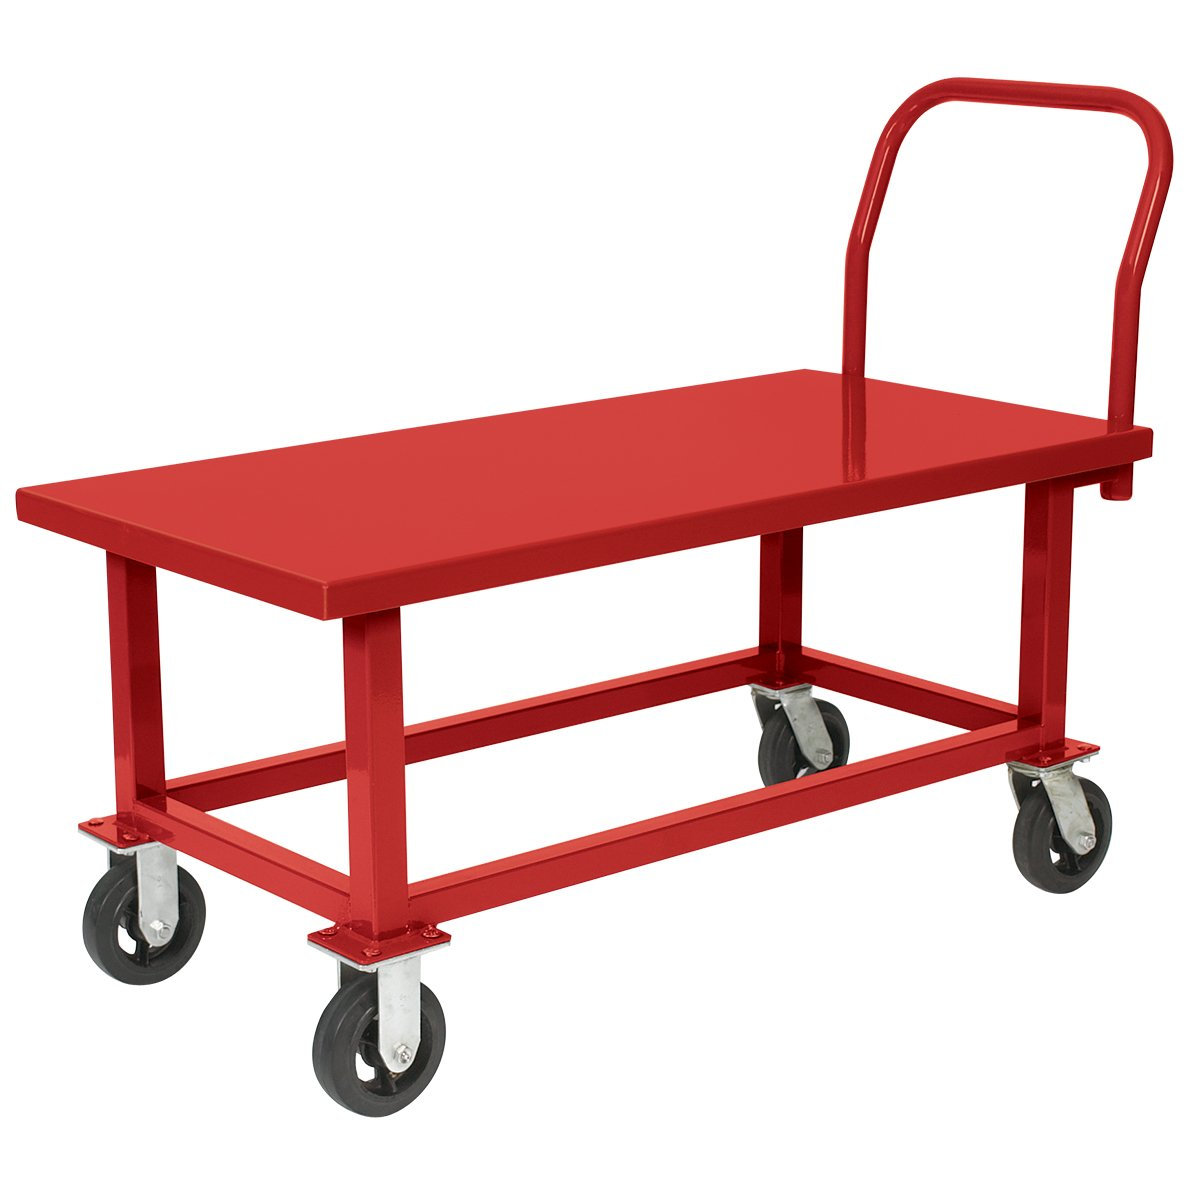 Akro-Mils RWHS30601A5M8 Rubber Steel HD Work Height Platform Truck, 30'' x 60'', Red